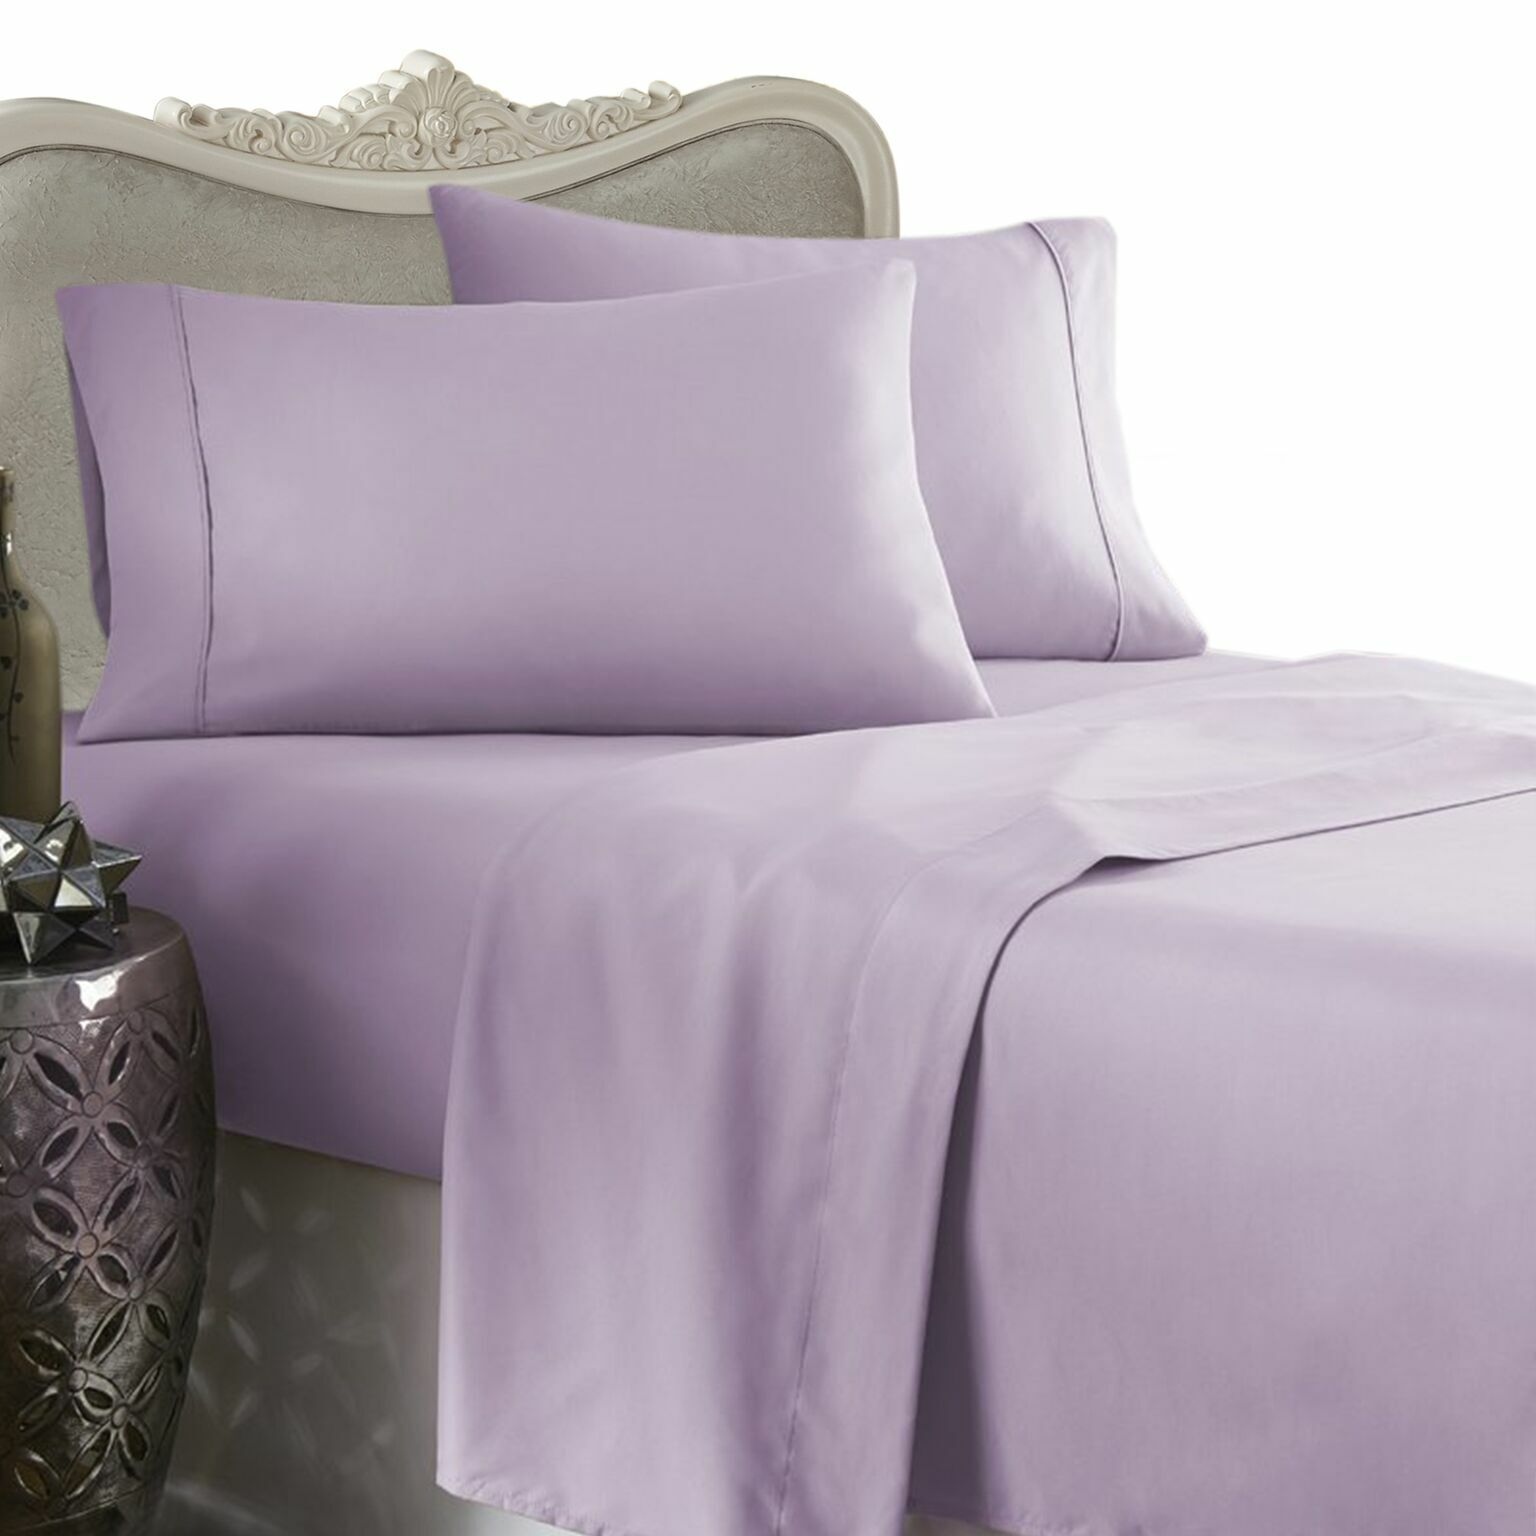 1200 Thread Count 100% Egyptian Cotton Bed Sheet Set 1200 TC TWIN Lavender Solid